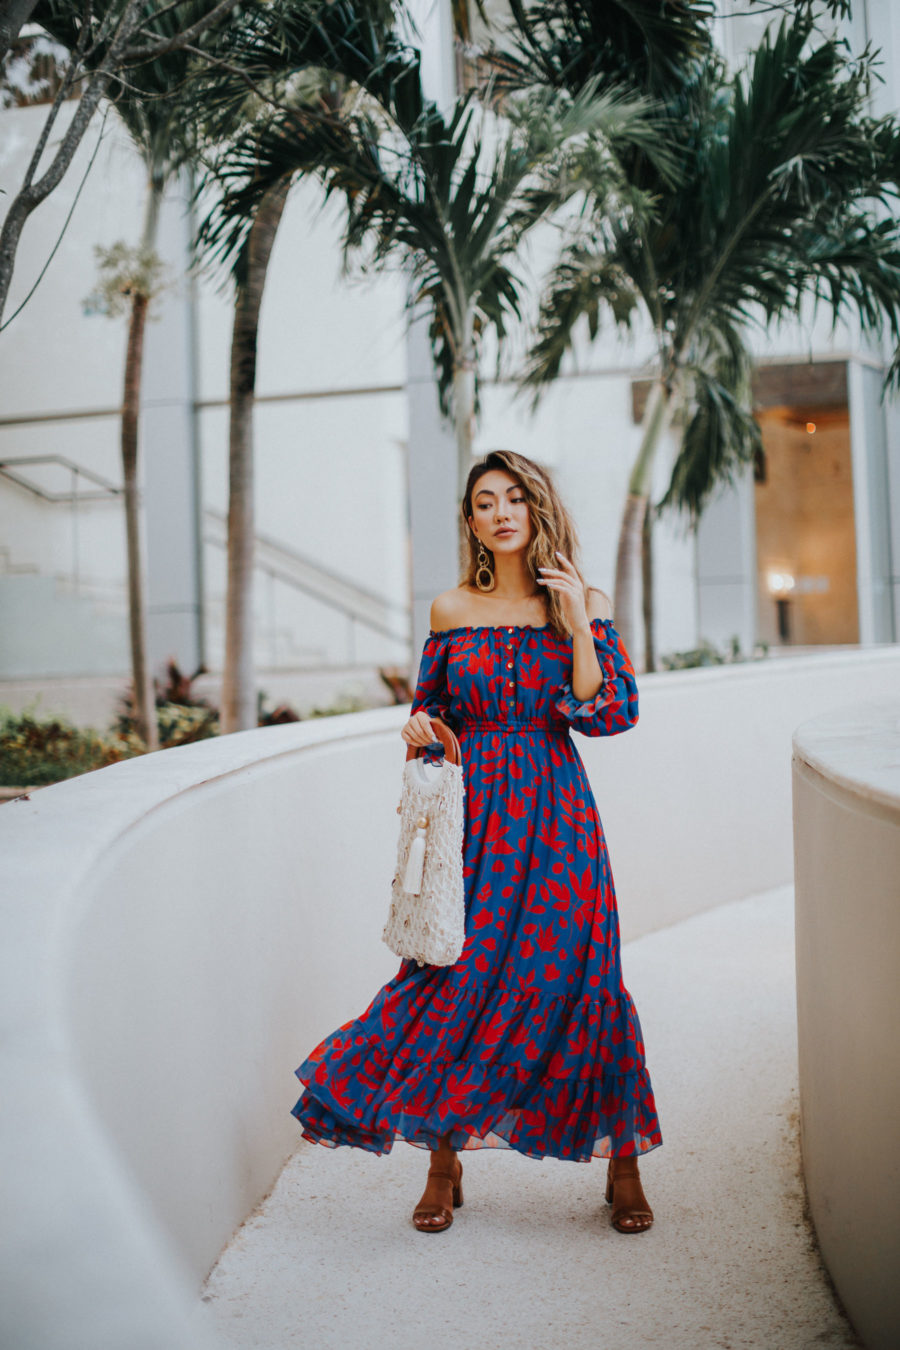 spring 2019 capsule wardrobe - caroline k dress, vacation style // Notjessfashion.com